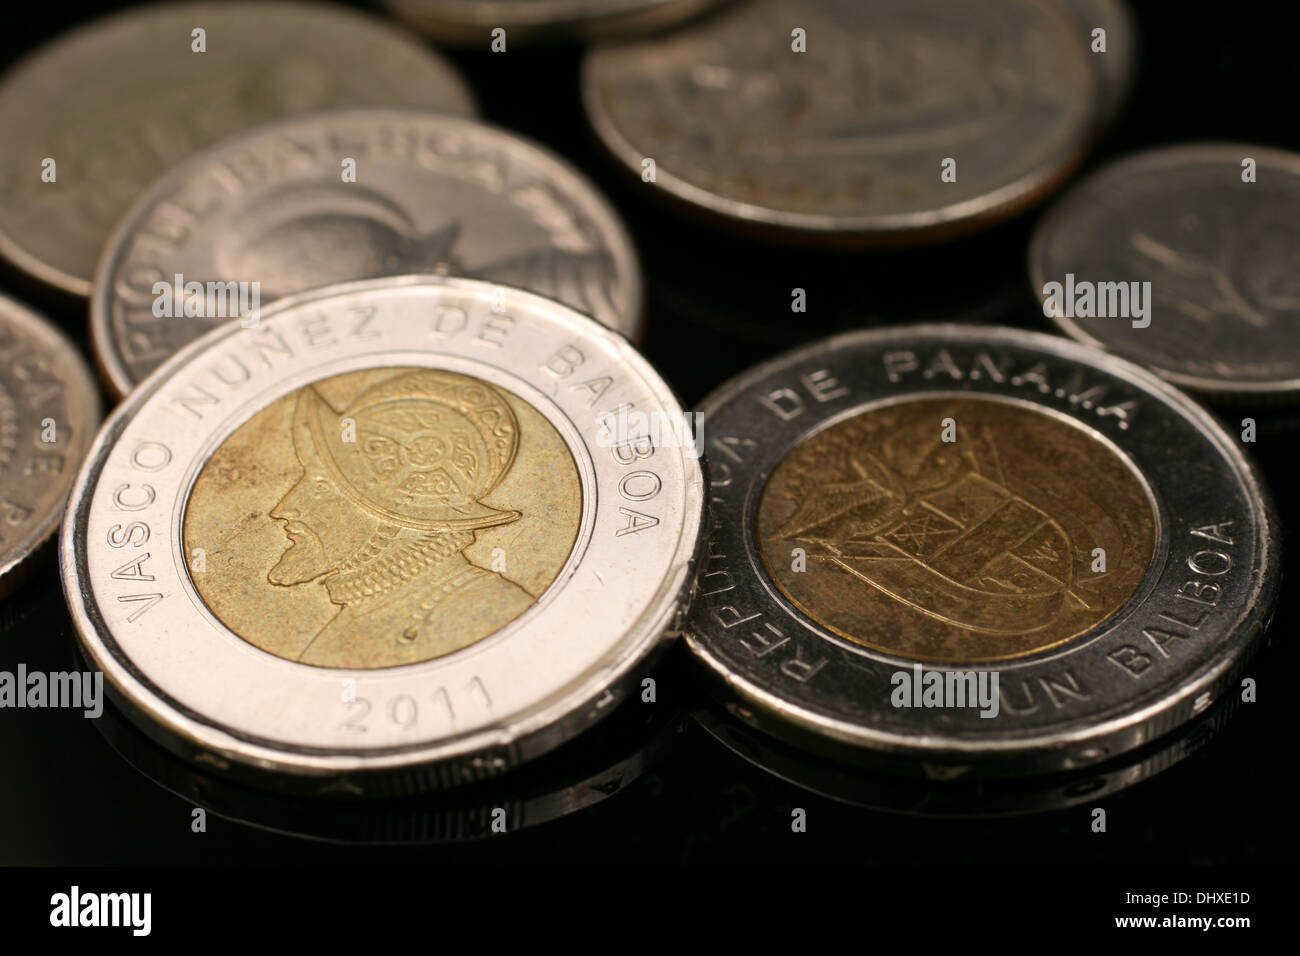 A close up image of panamanian coins on a black background - Stock Image